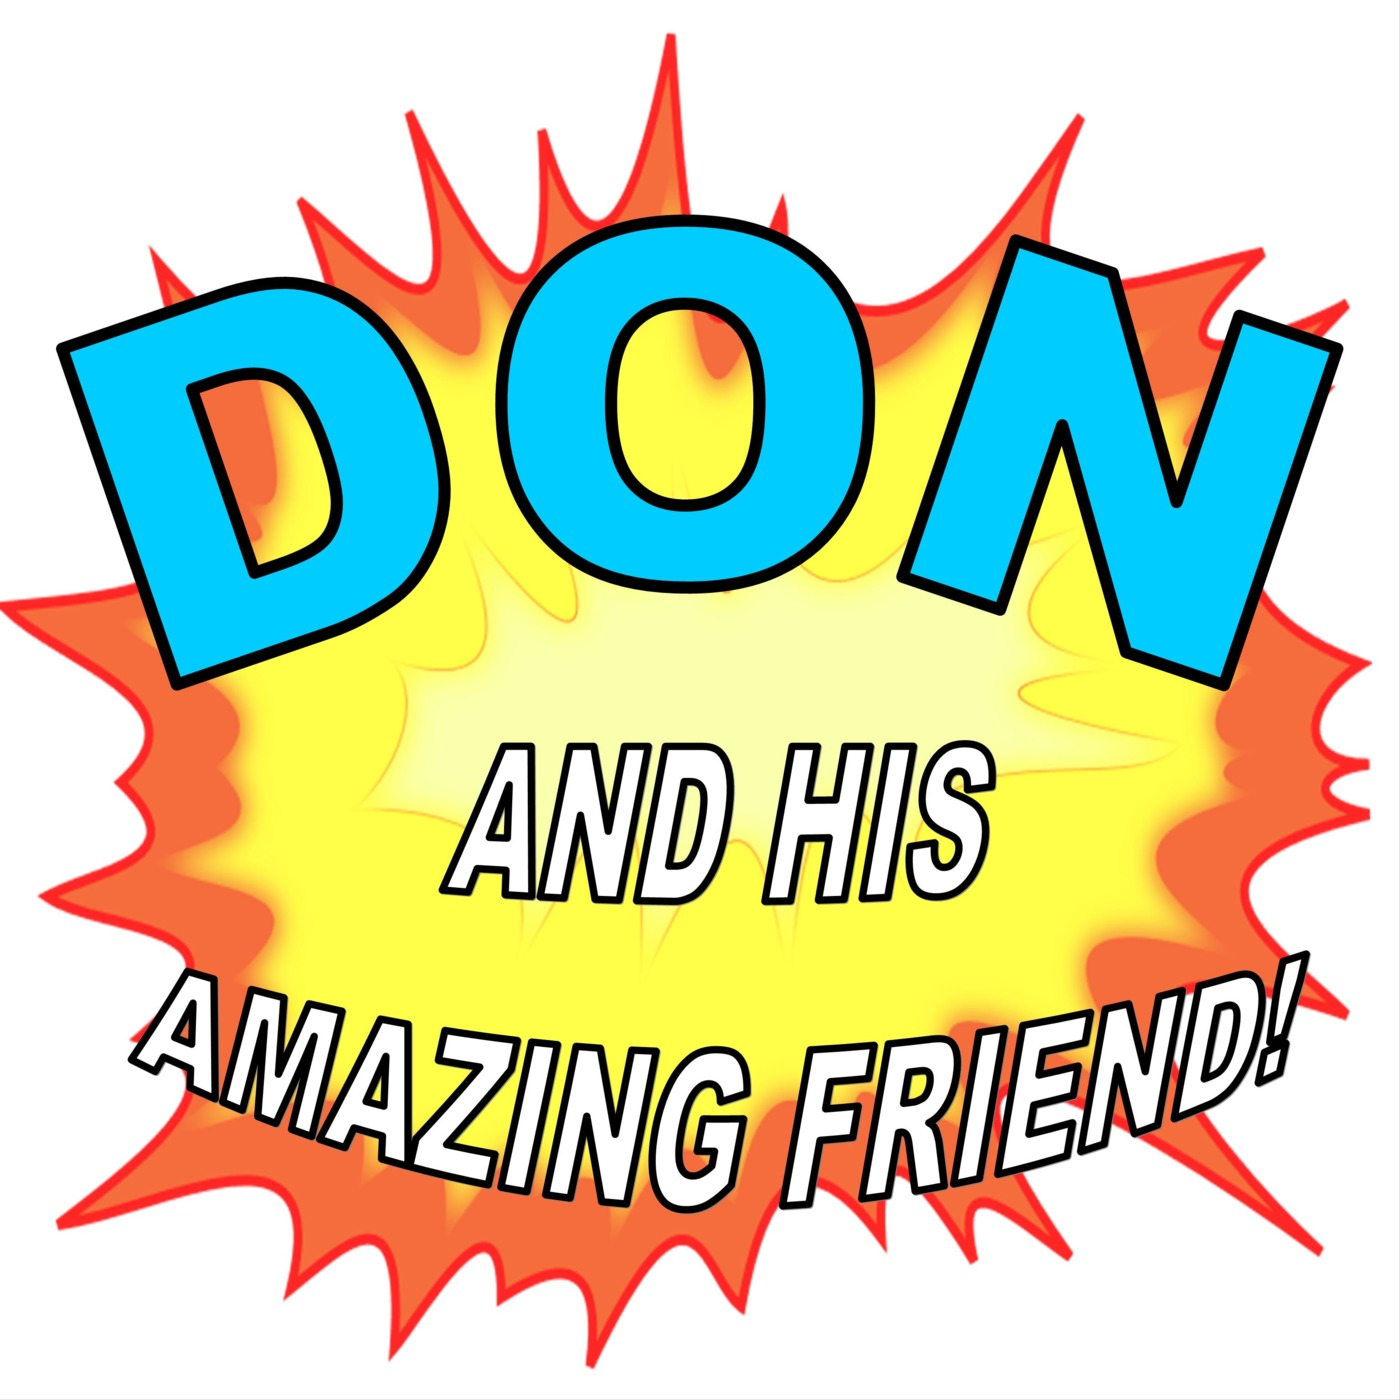 DON and his AMAZING FRIEND!